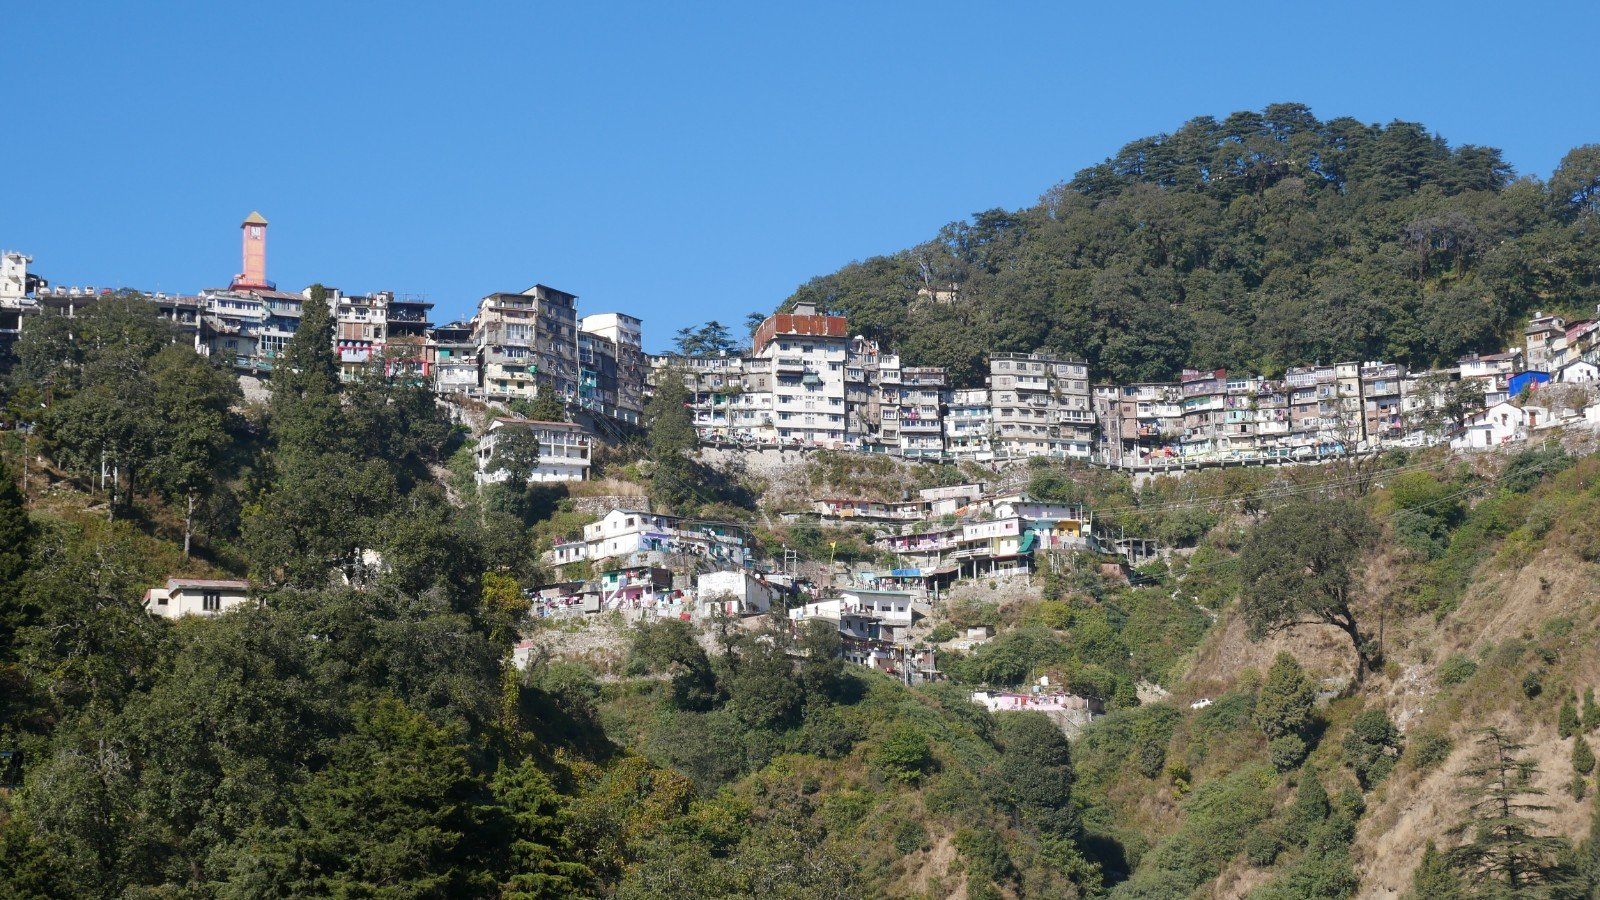 A View of Landour Hill Station